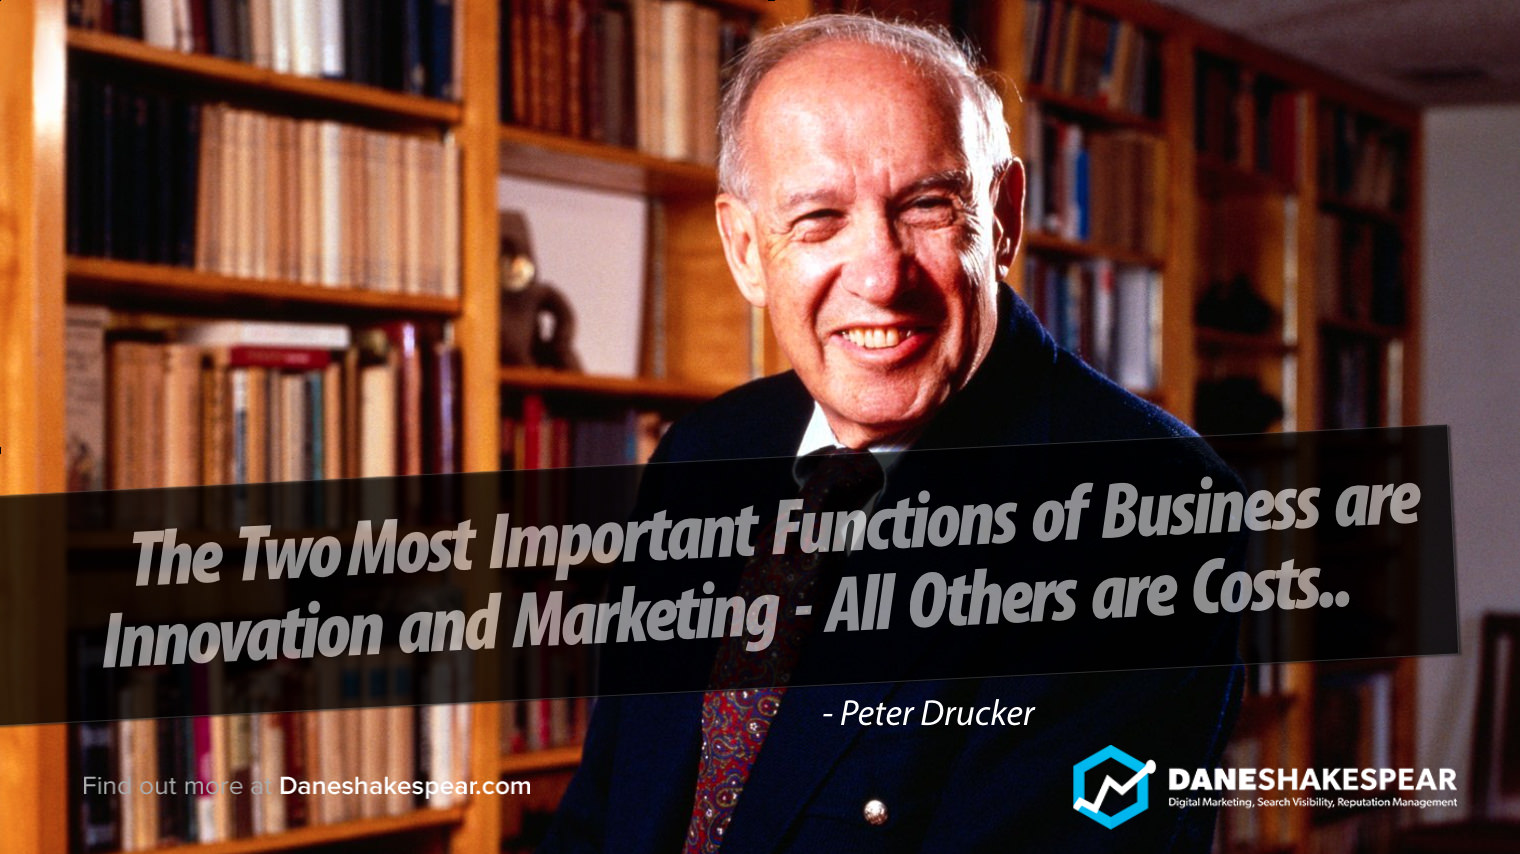 The 2 Most Important Functions of Business are Innovation and Marketing